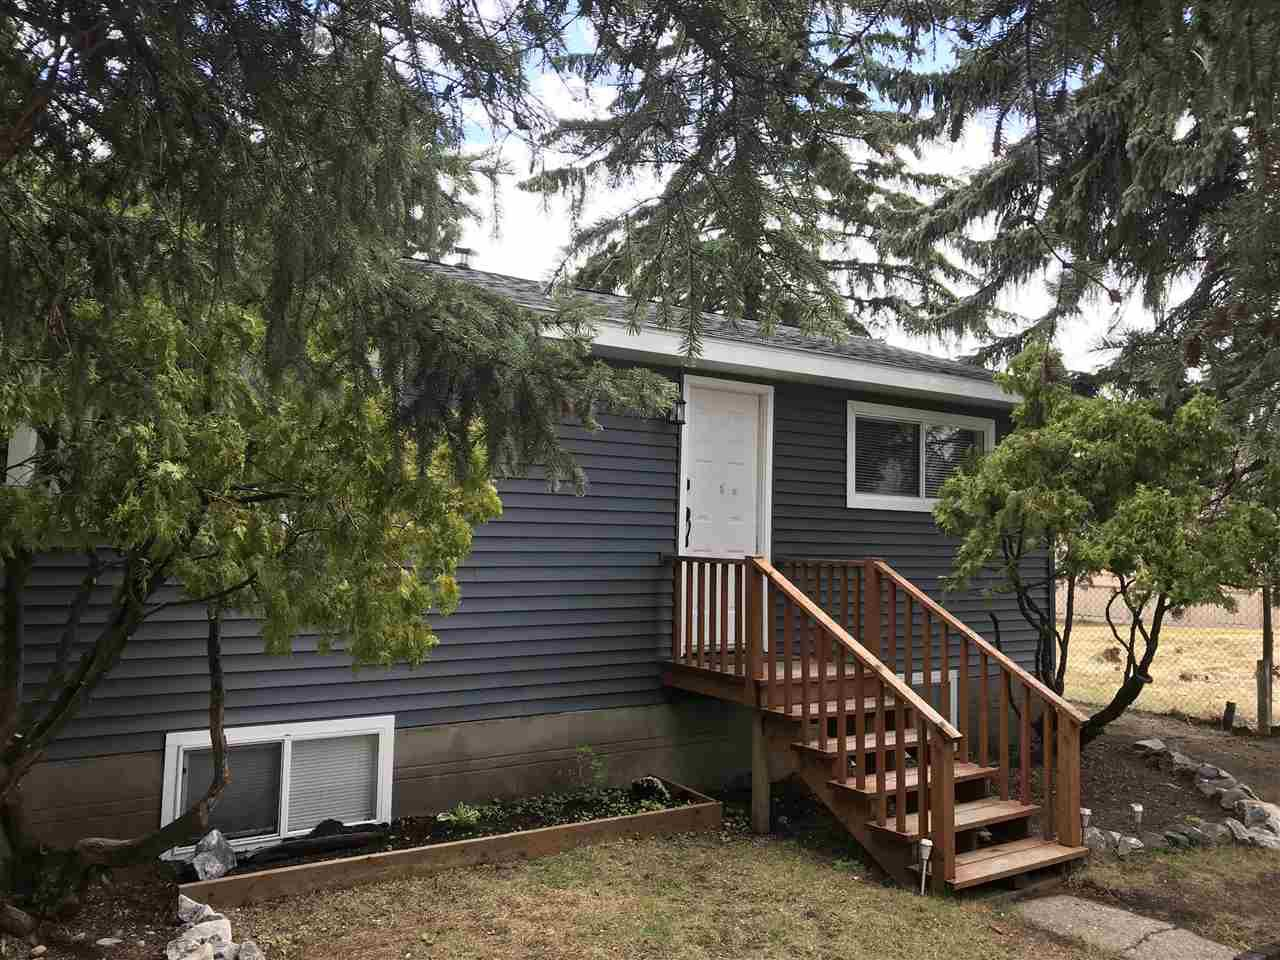 Main Photo: 1626 TAMARACK Street in Prince George: Van Bow House for sale (PG City Central (Zone 72))  : MLS®# R2291252